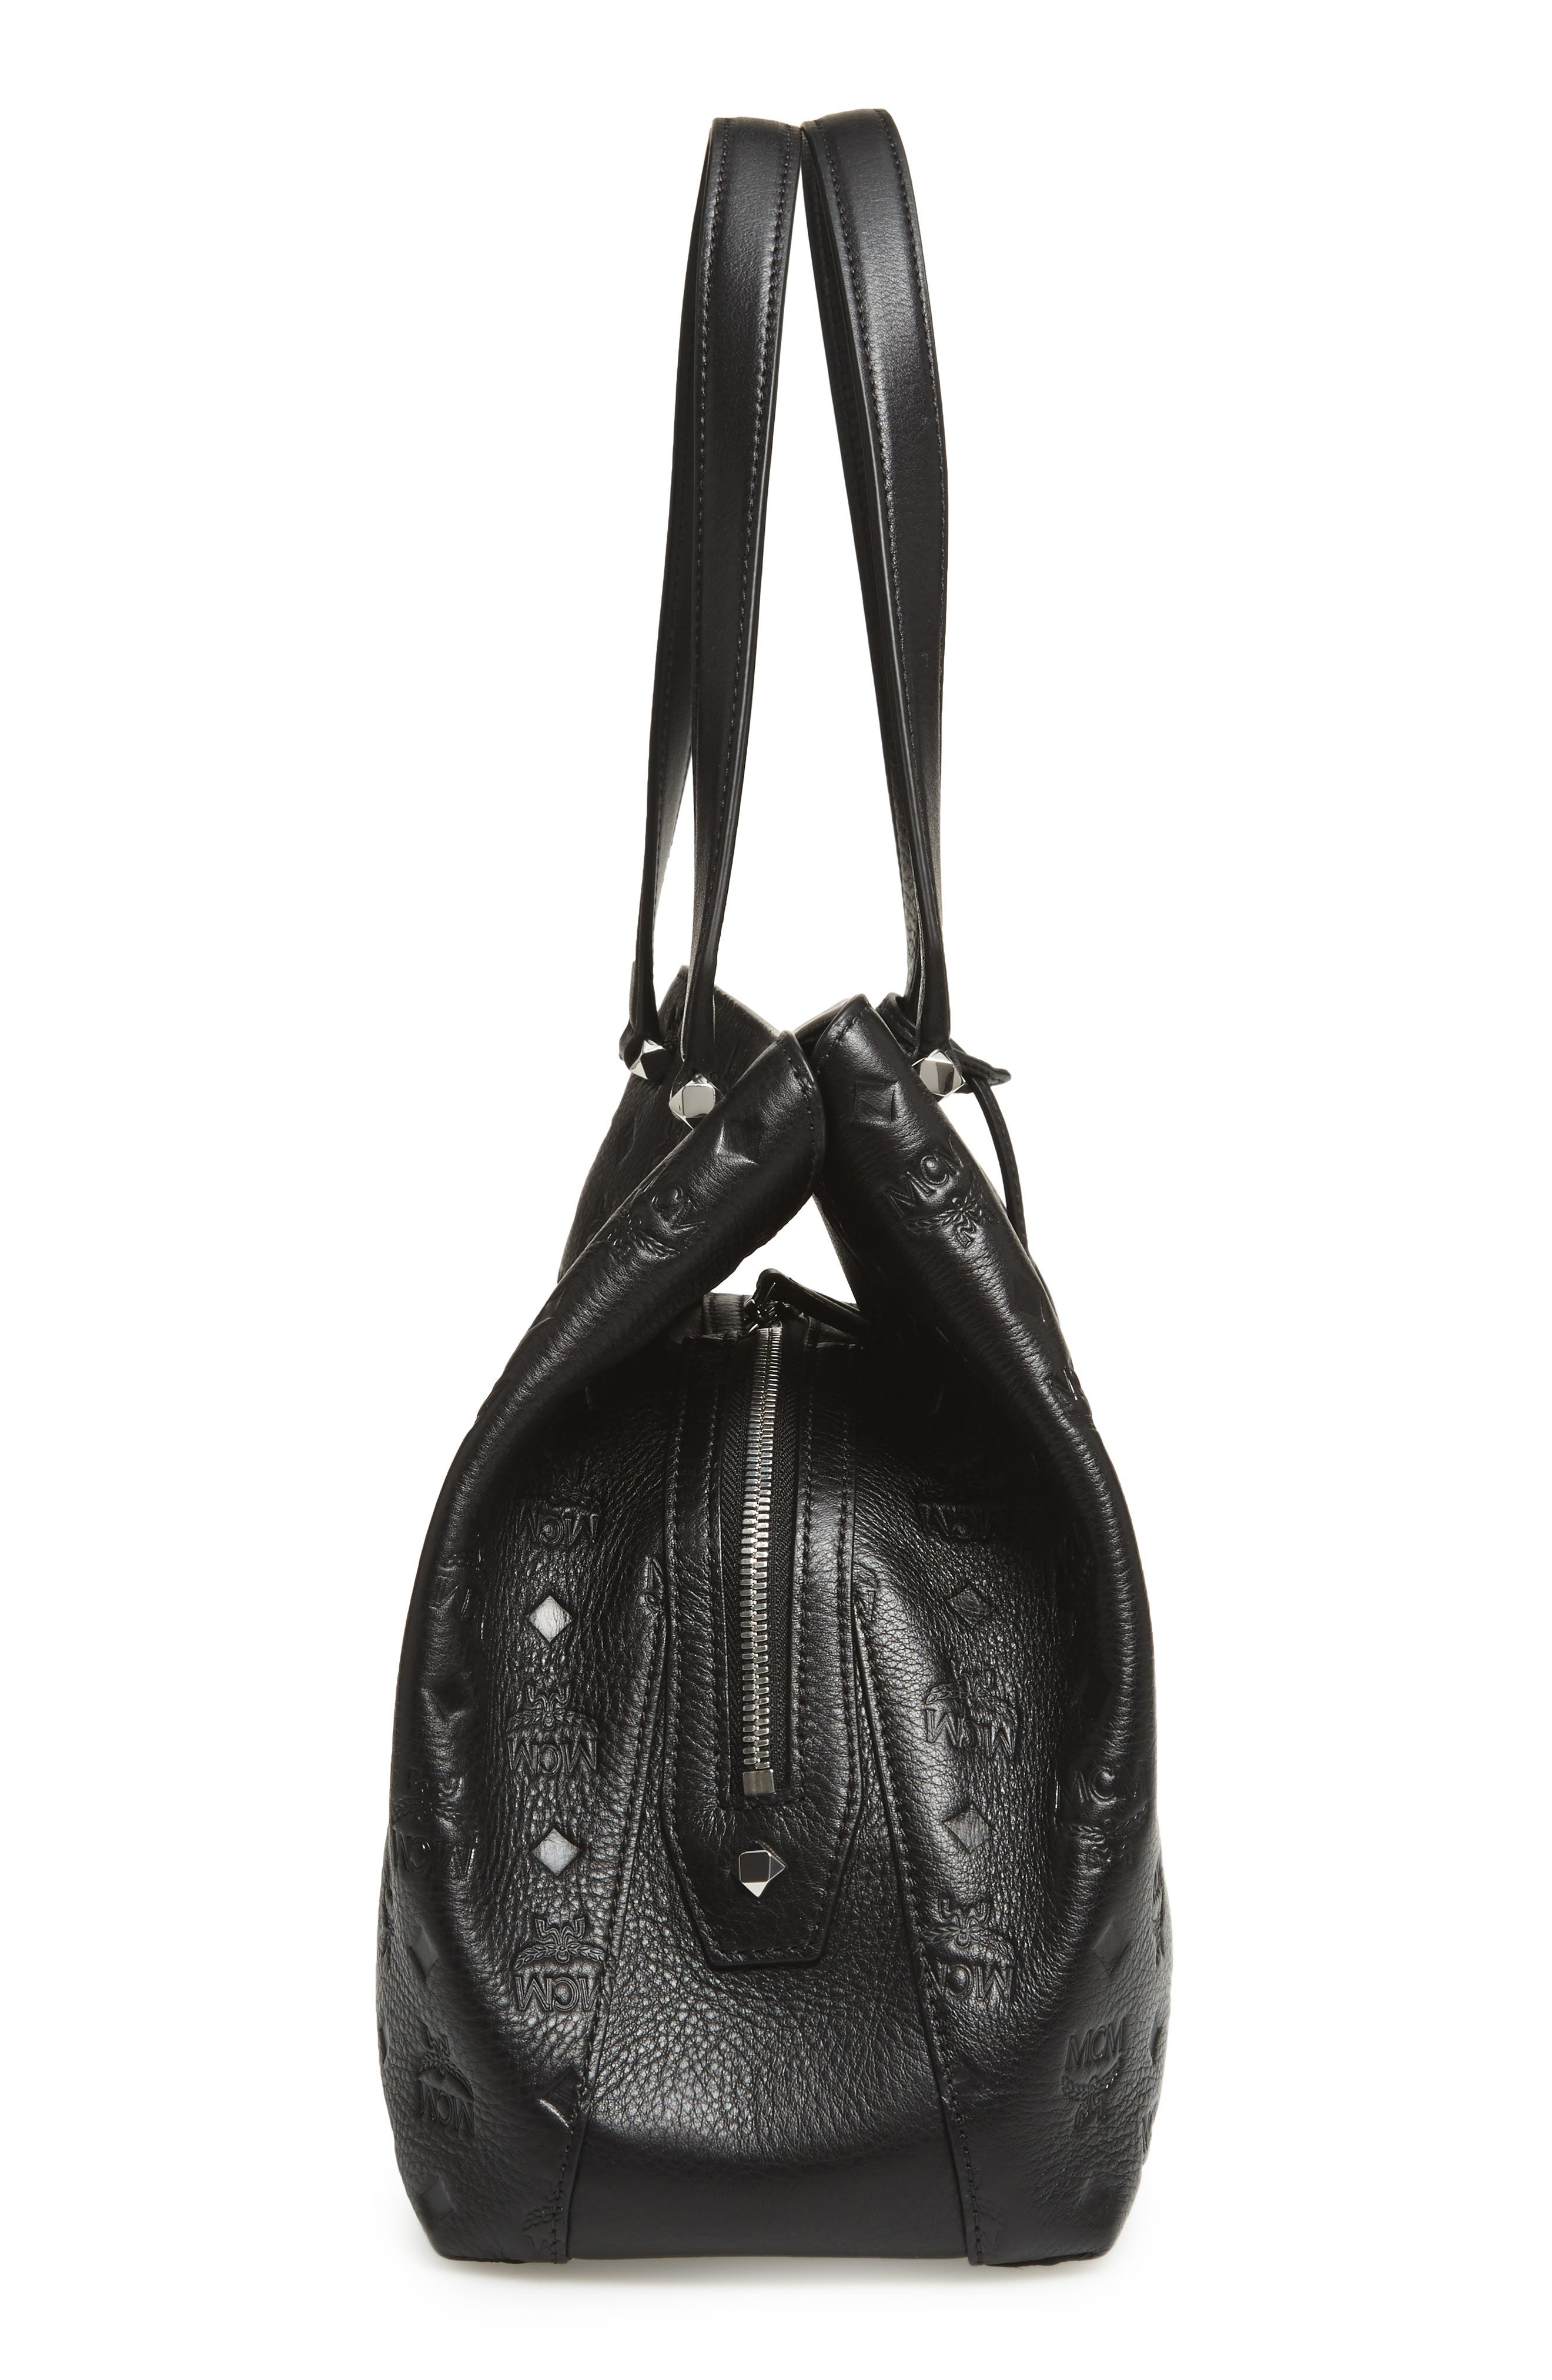 Signature Monogrammed Leather Handbag,                             Alternate thumbnail 5, color,                             Black